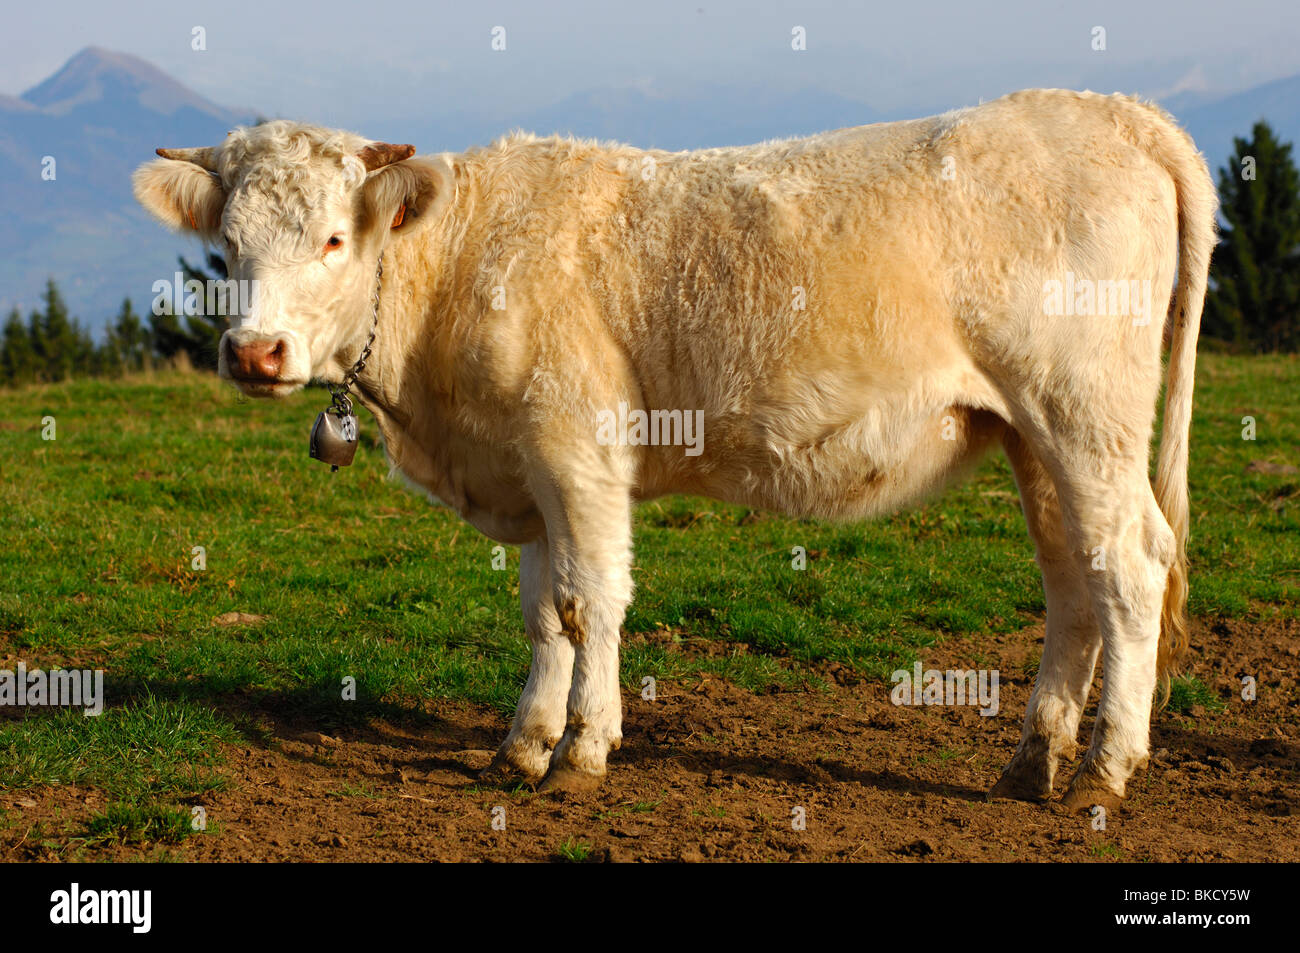 Young Charolais fattening bull, France - Stock Image